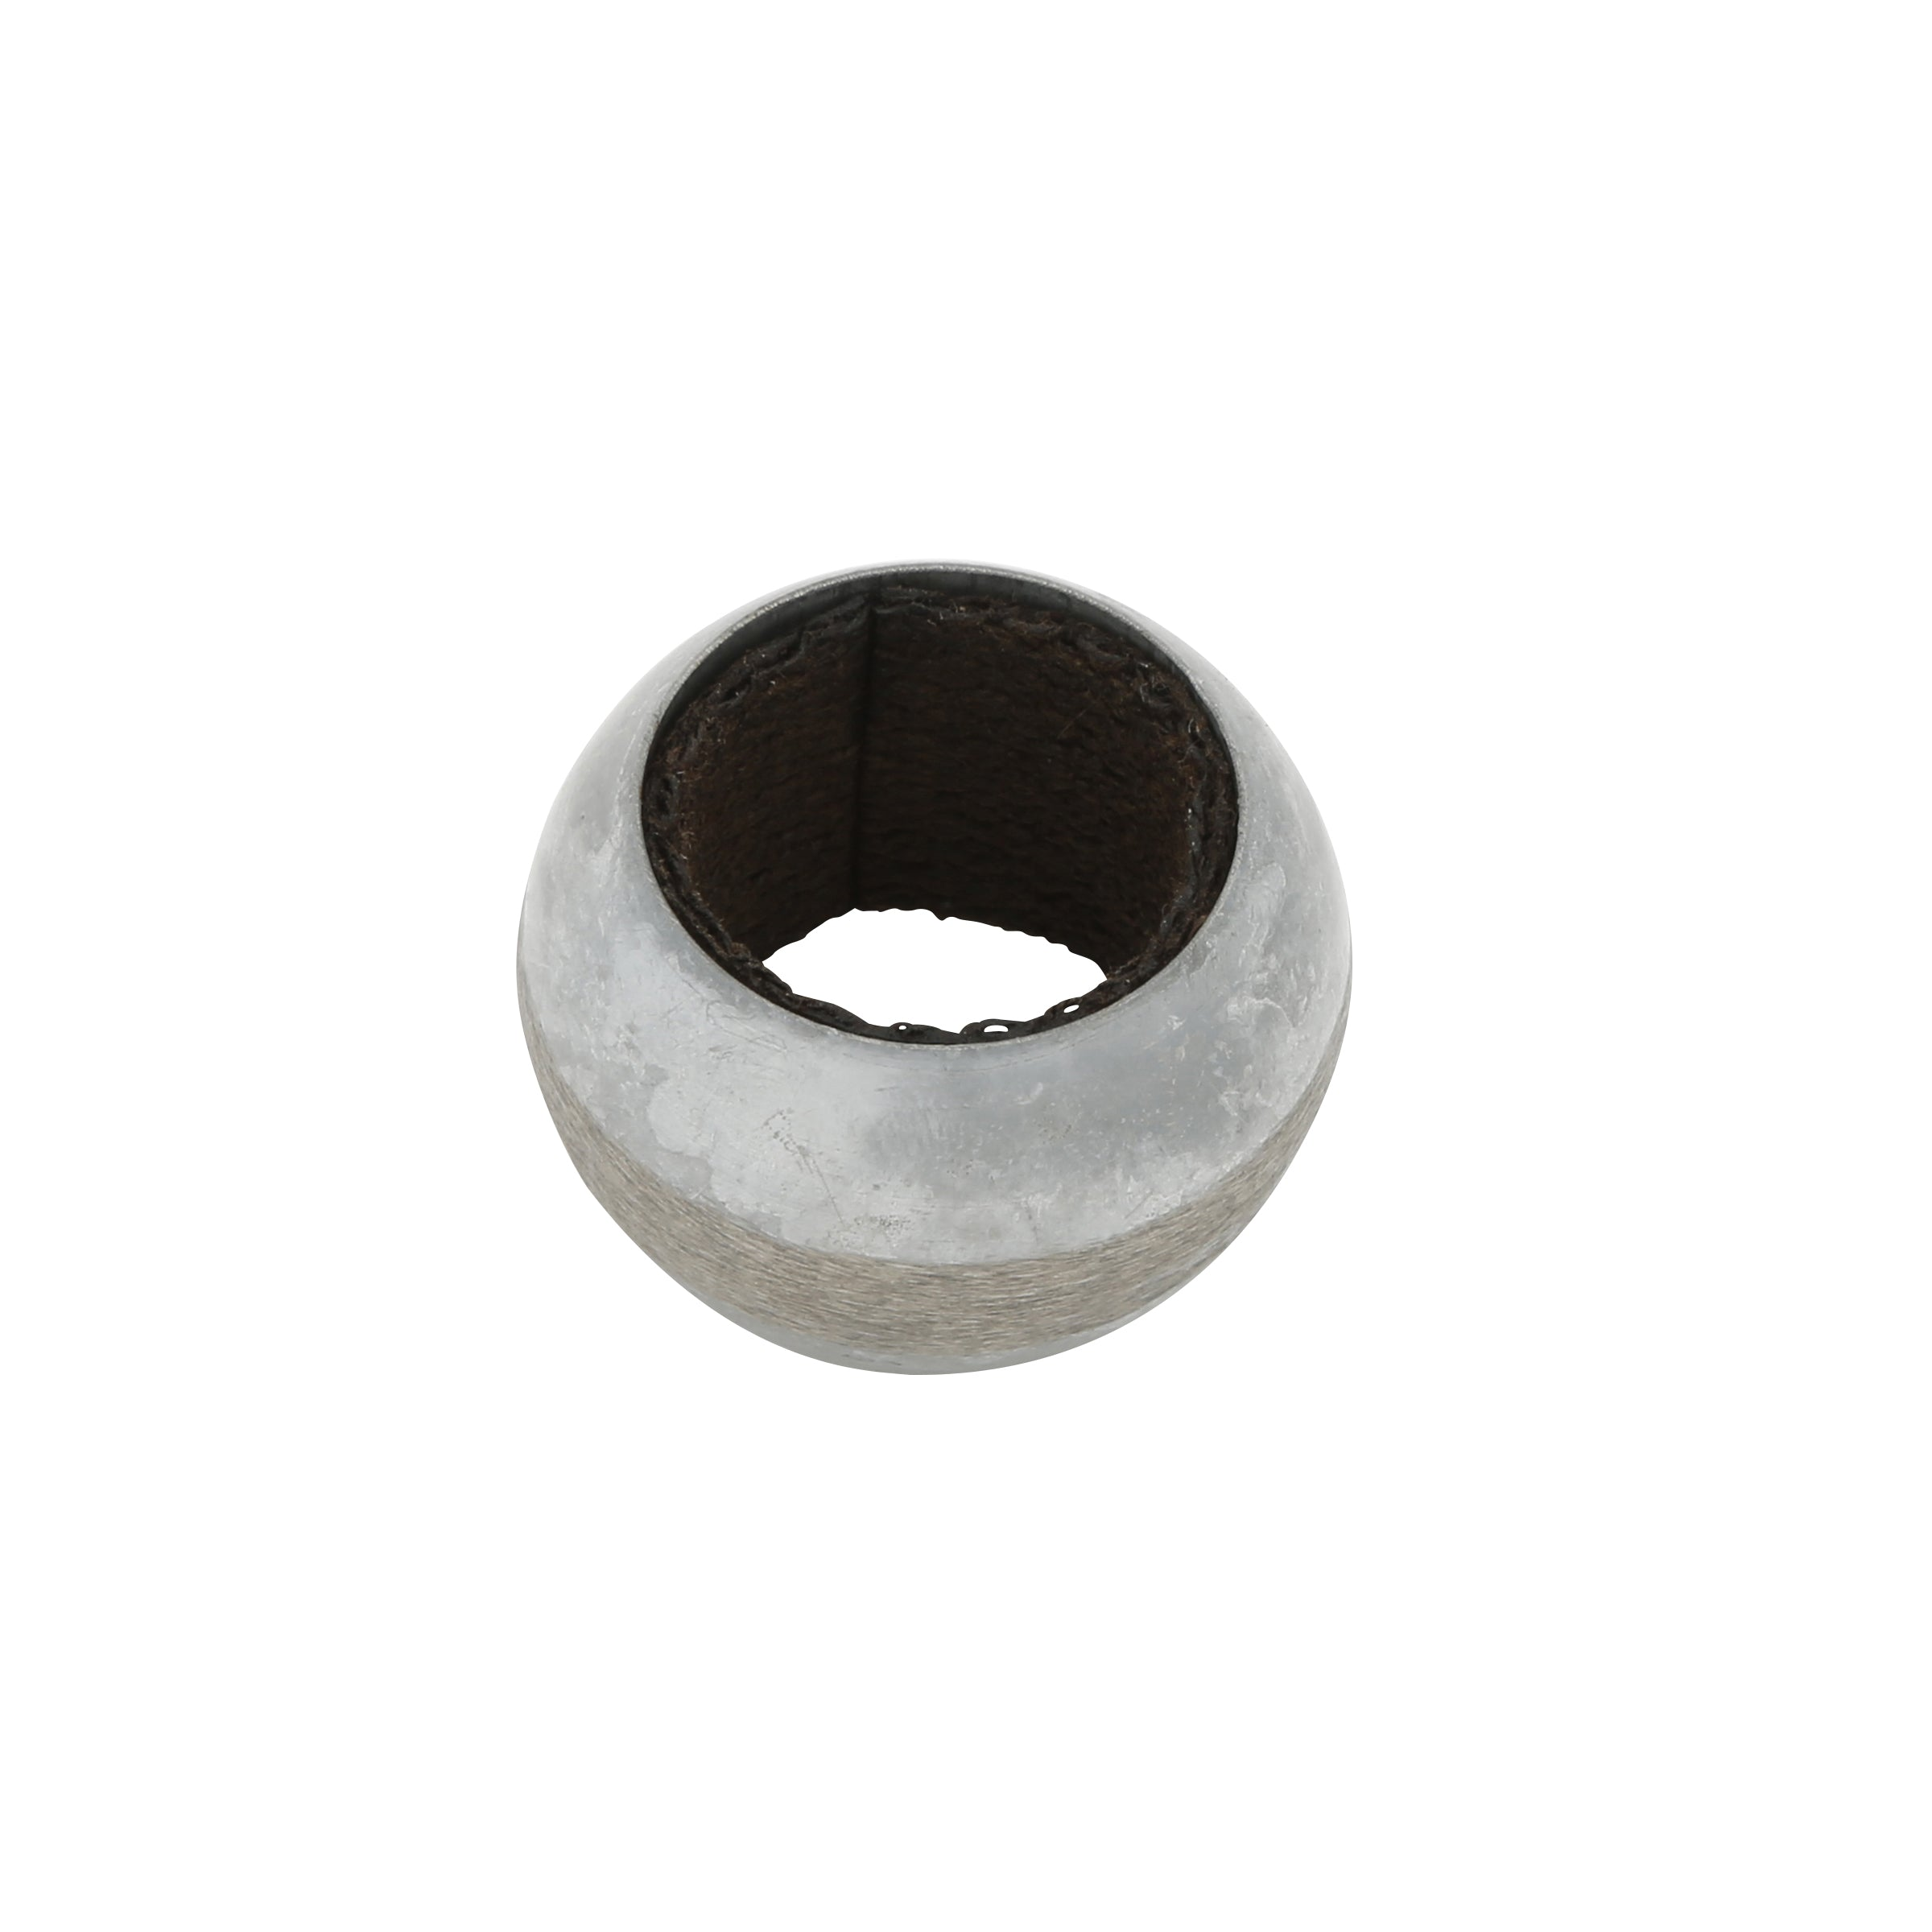 Brake Cross Shaft Bushing (One Piece) • 1928-31 Model A Ford